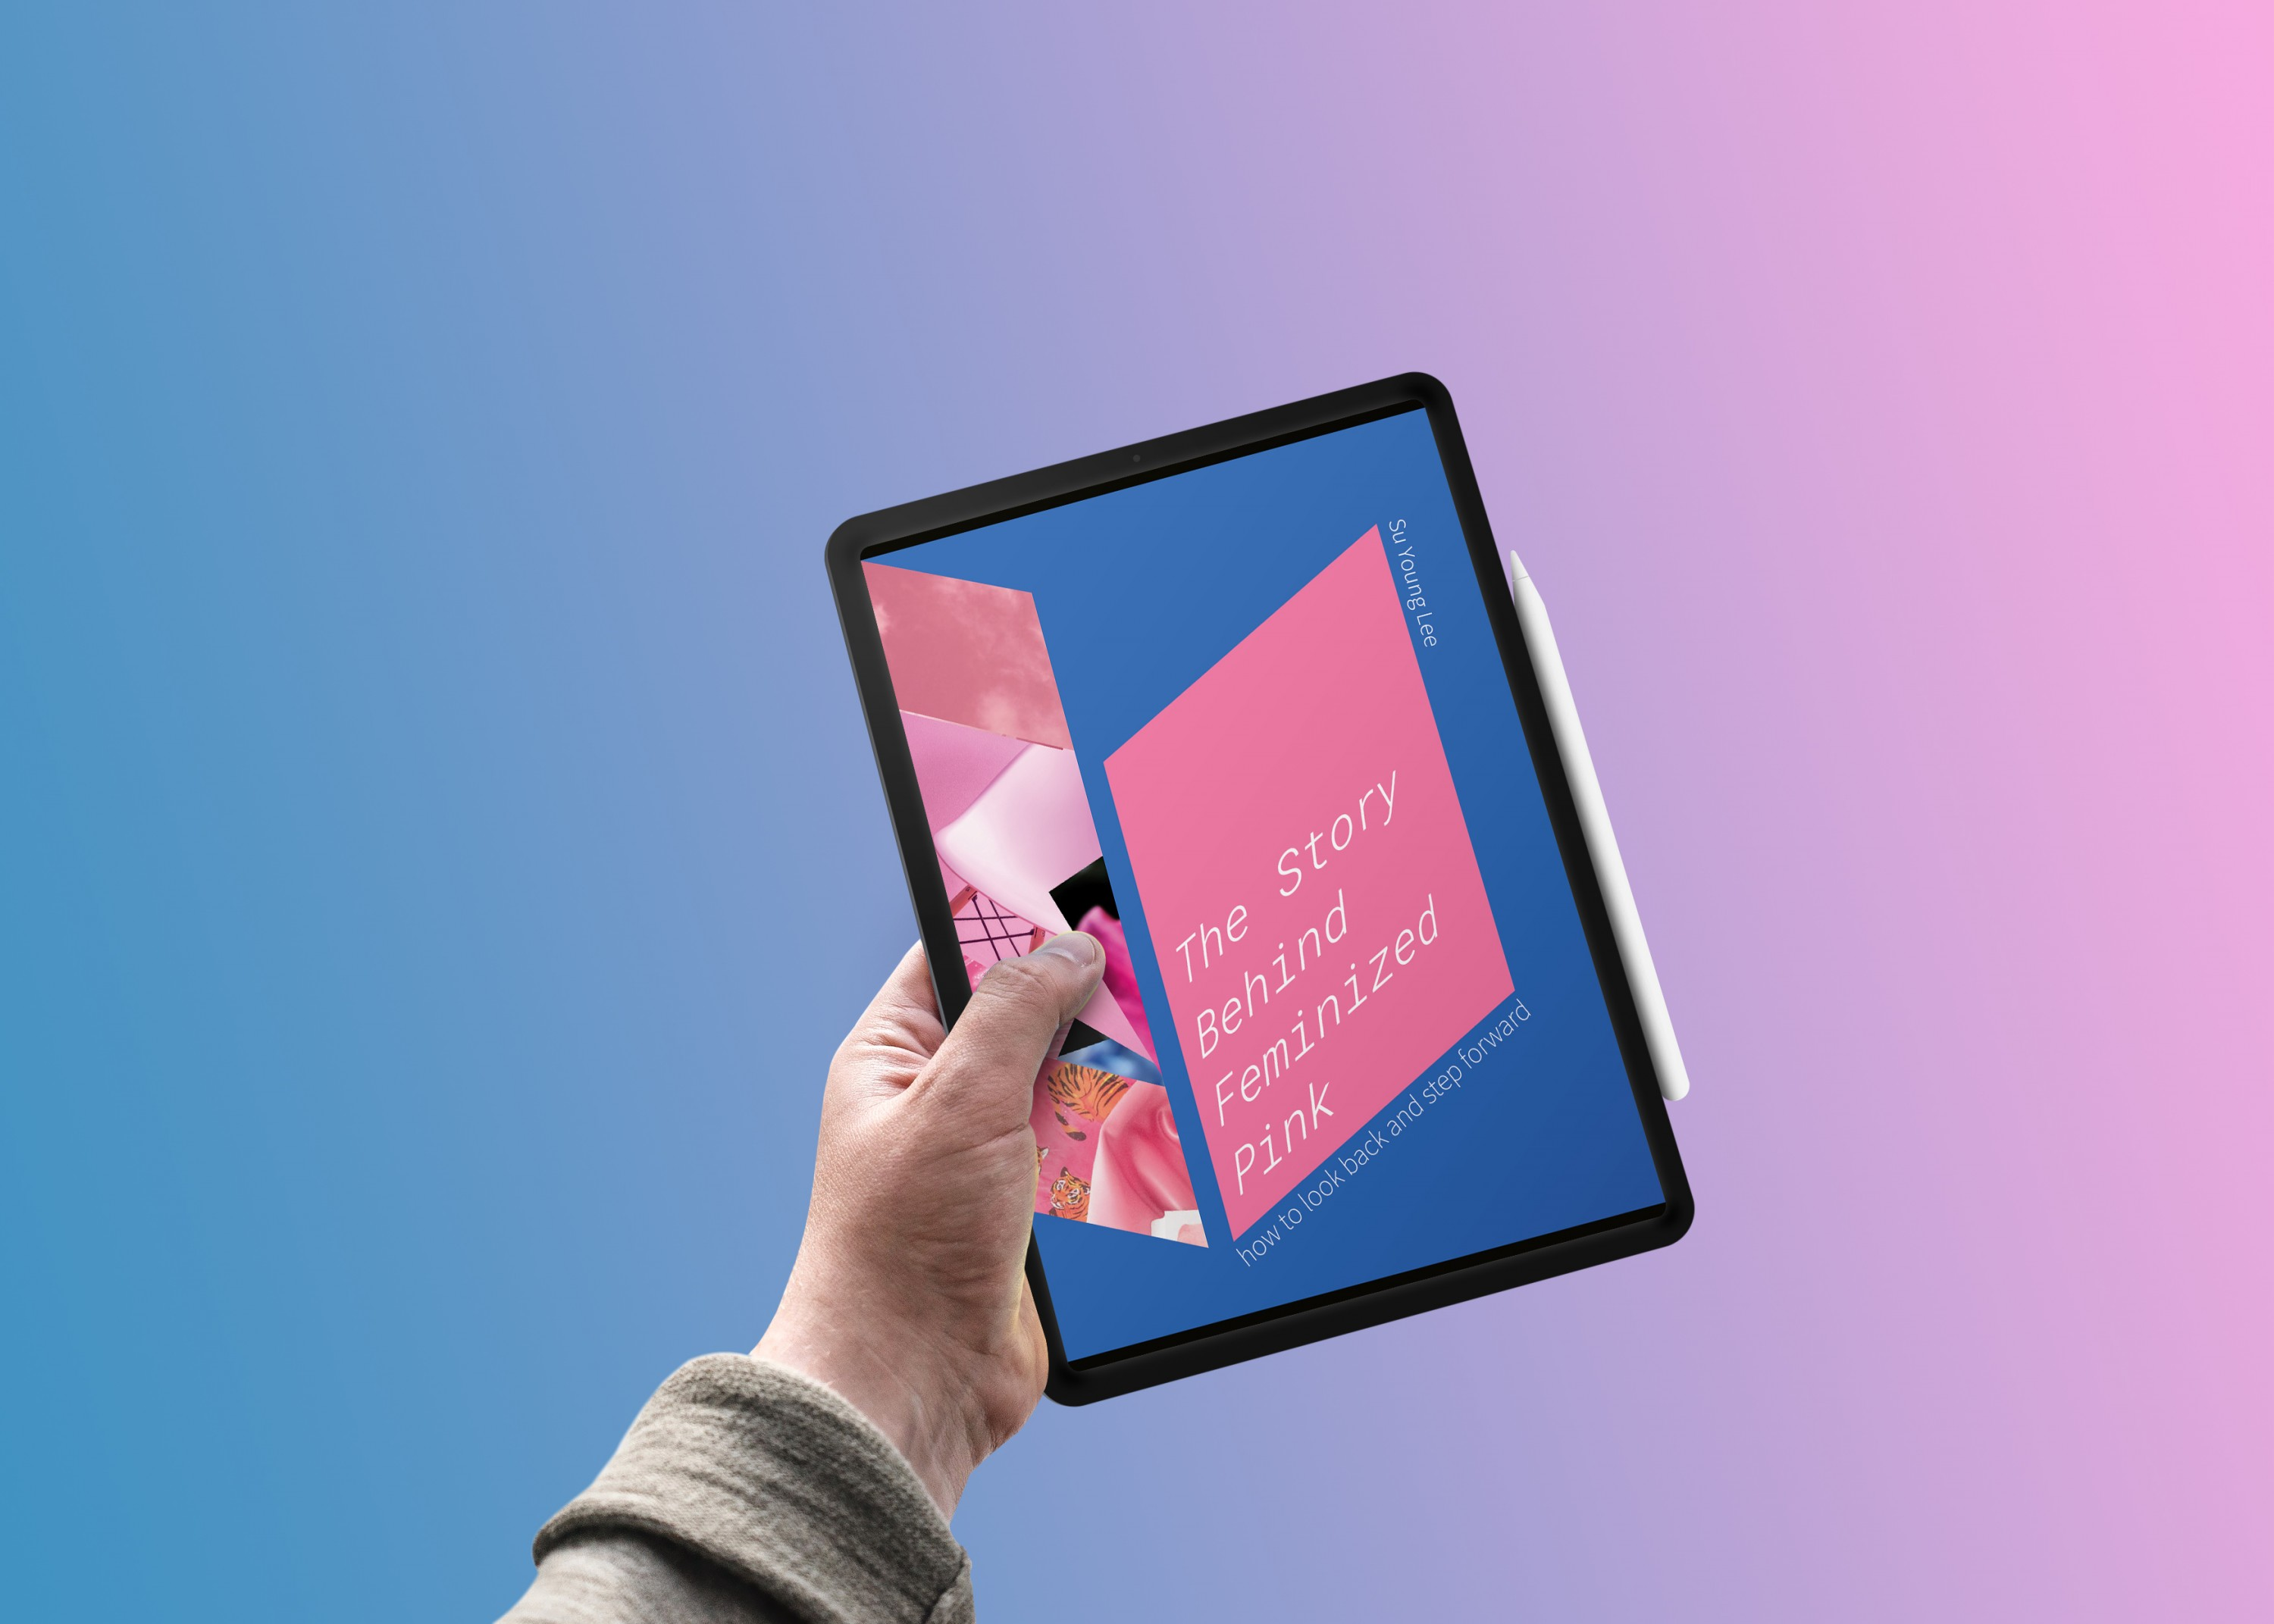 It is a digital book that shows the cover as its main image. The cover has medium-dark blue as its background. There's a vertical parallelogram that has a collage of various images with pink colors on the left side. Some of them are still objects, and som